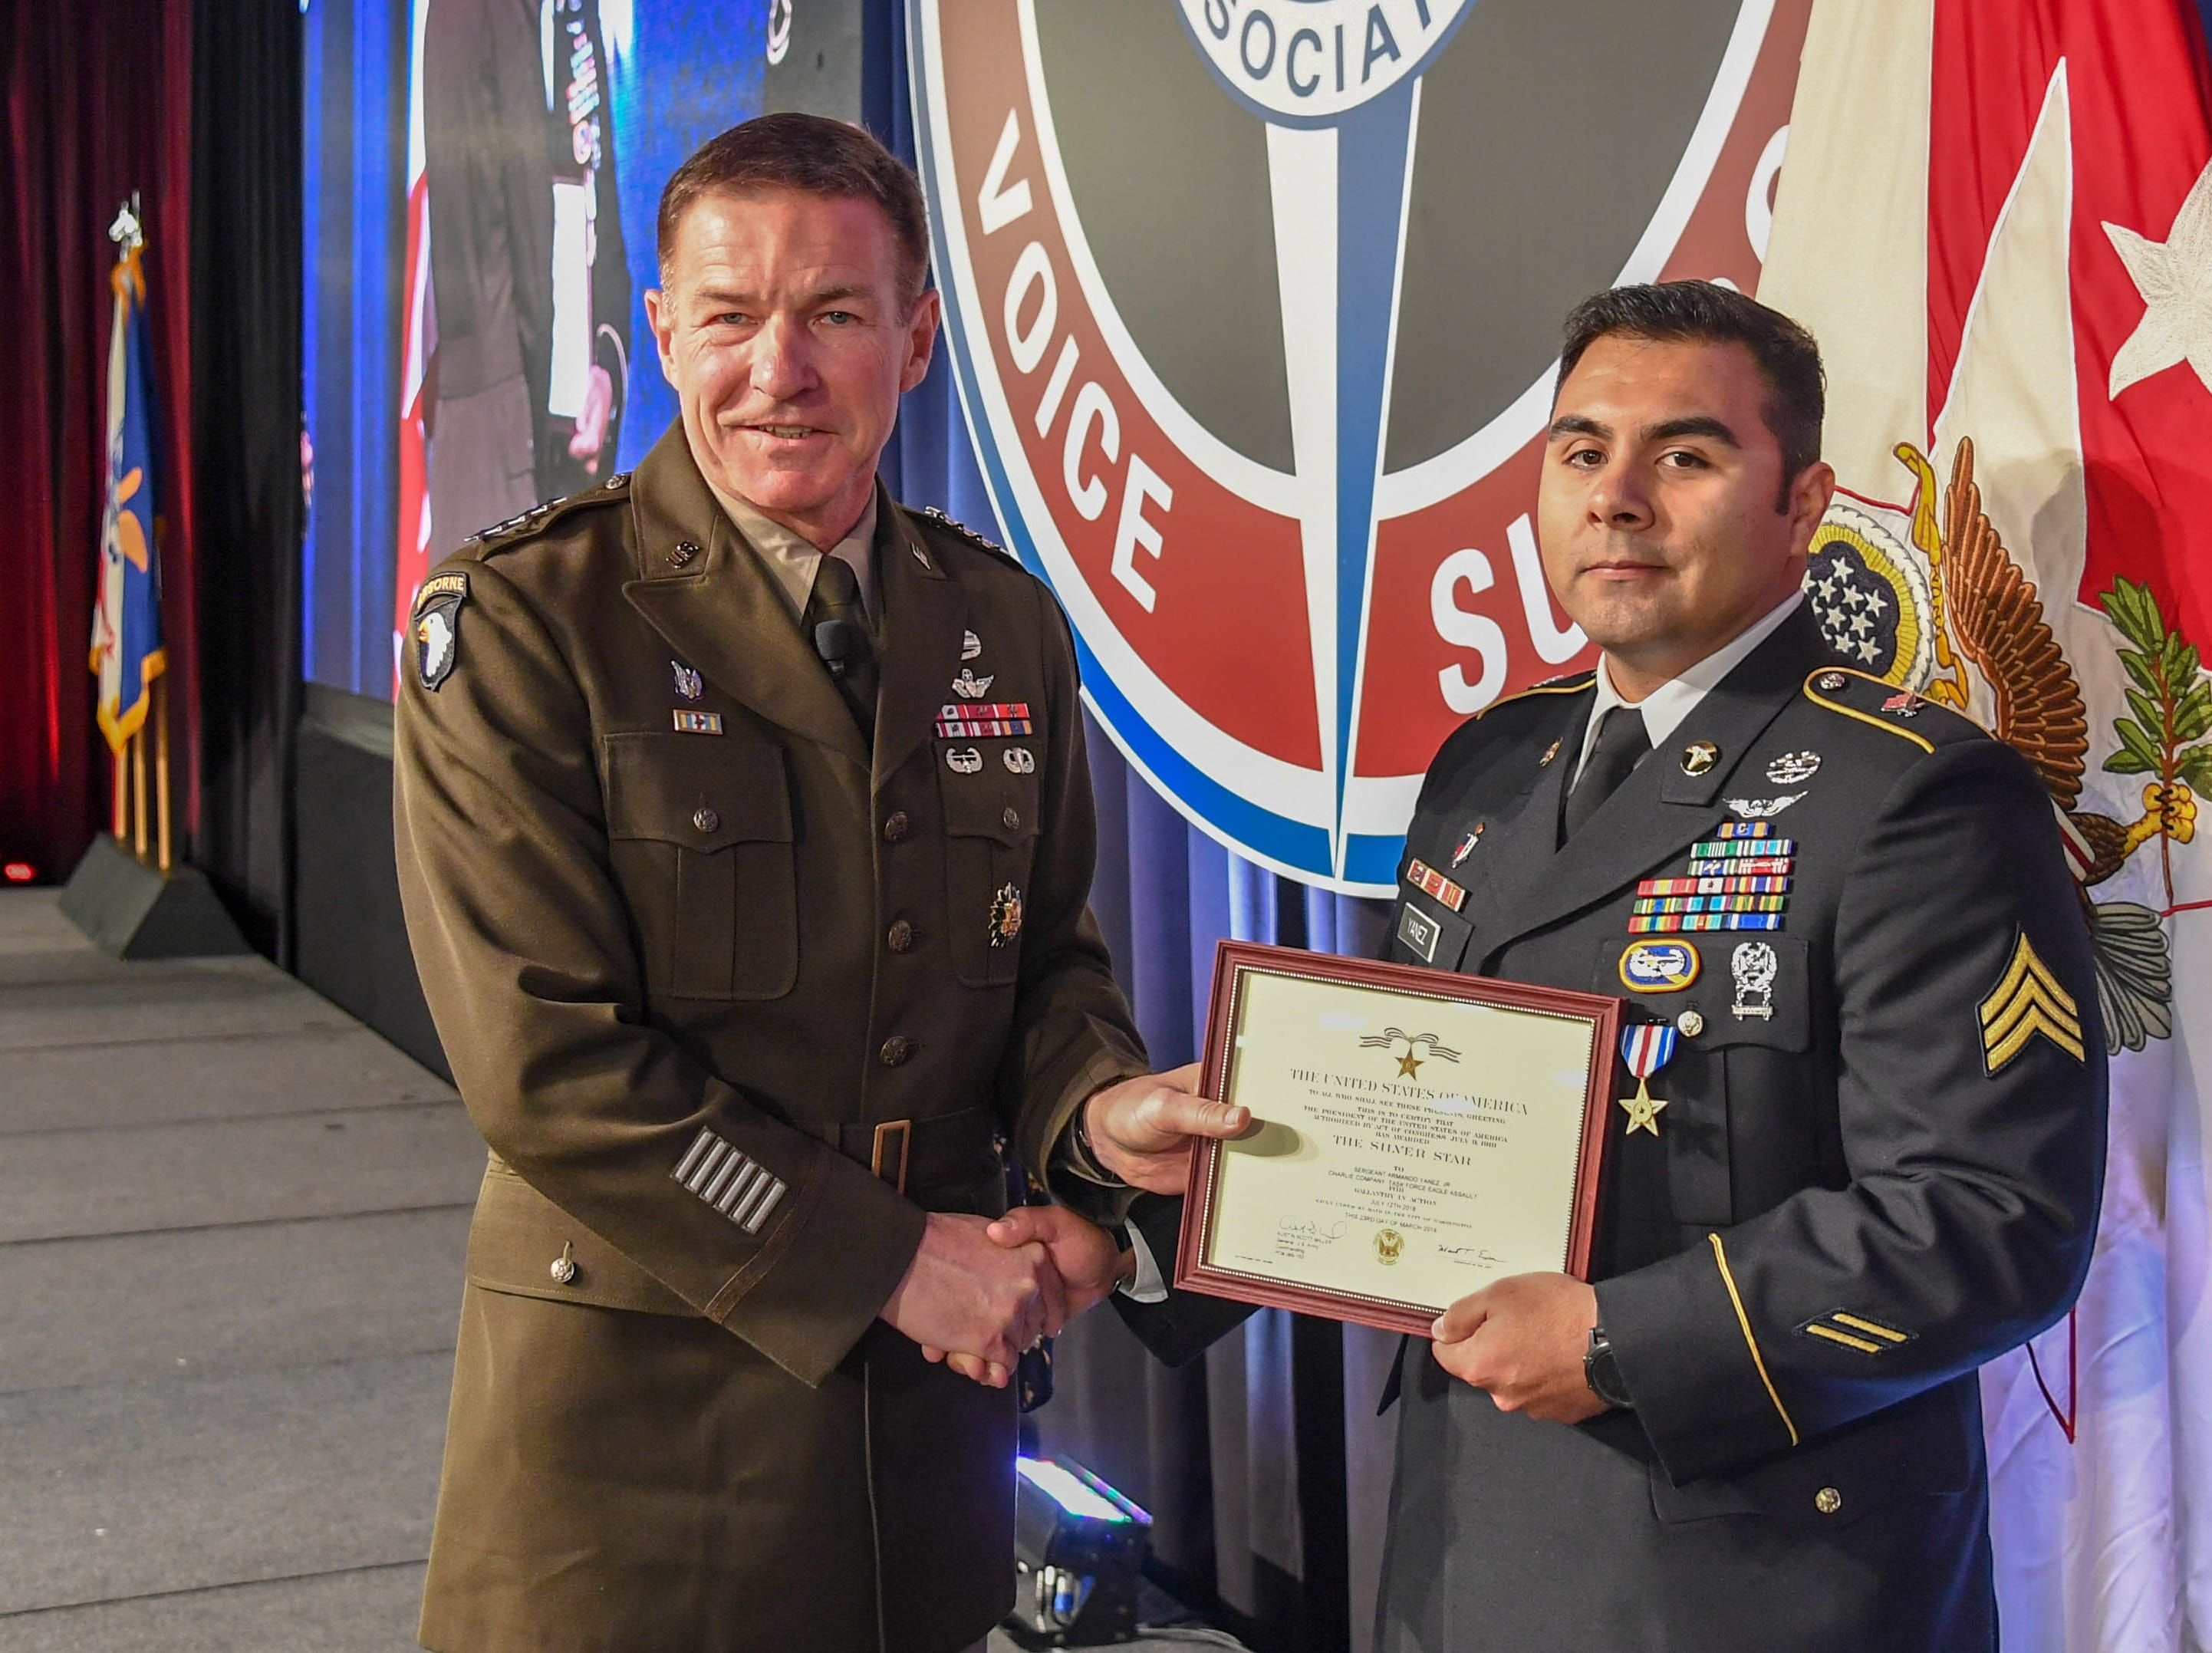 Sgt. Armando Yanez, 101st Combat Aviation Brigade, poses for a photo with General James McConville after receiving the Silver Star on April 16, 2019, for heroism in combat during a medevac mission last year in Afghanistan.